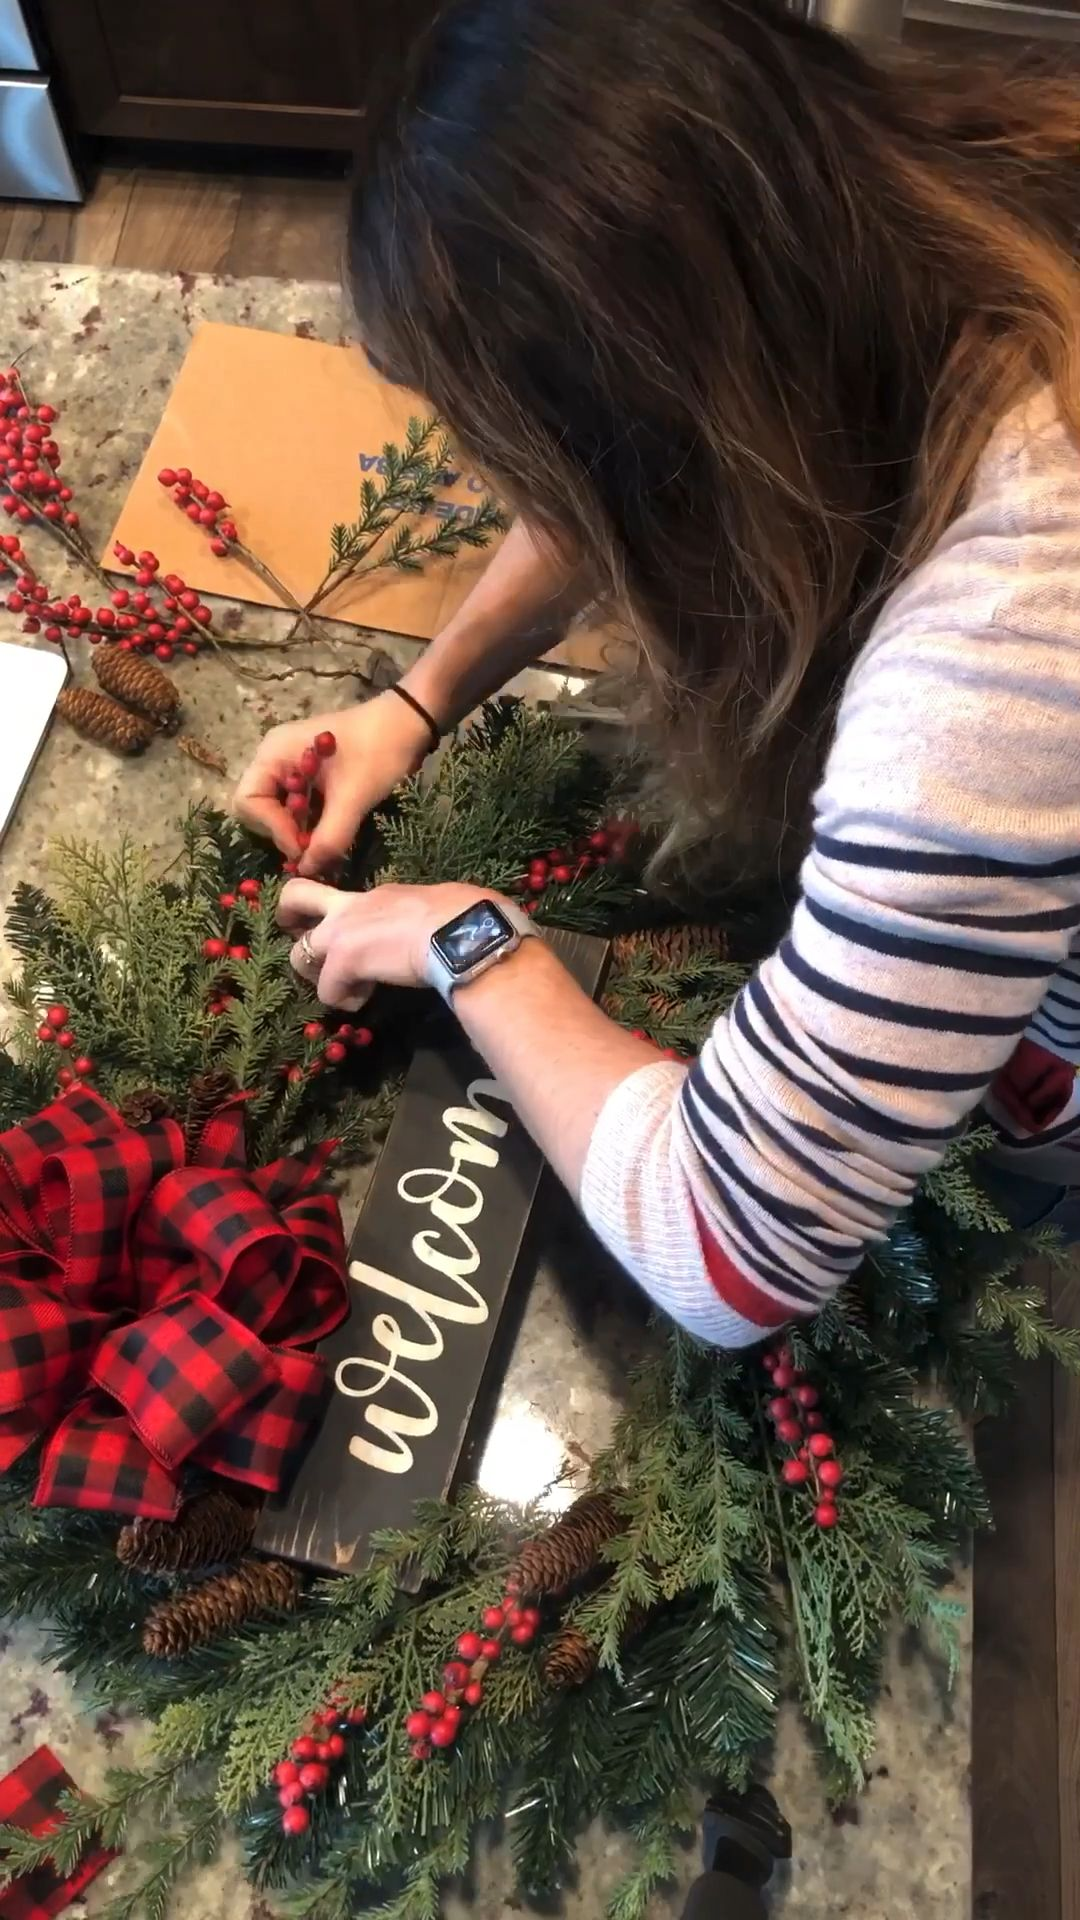 #diy #christmas #christmasdecor #christmaswreath #wreath #wreathdiy #diywreath #winterdecor #christmasdecor #farmhouse #farmhousedecor #farmhousestyle #farmhousewreath